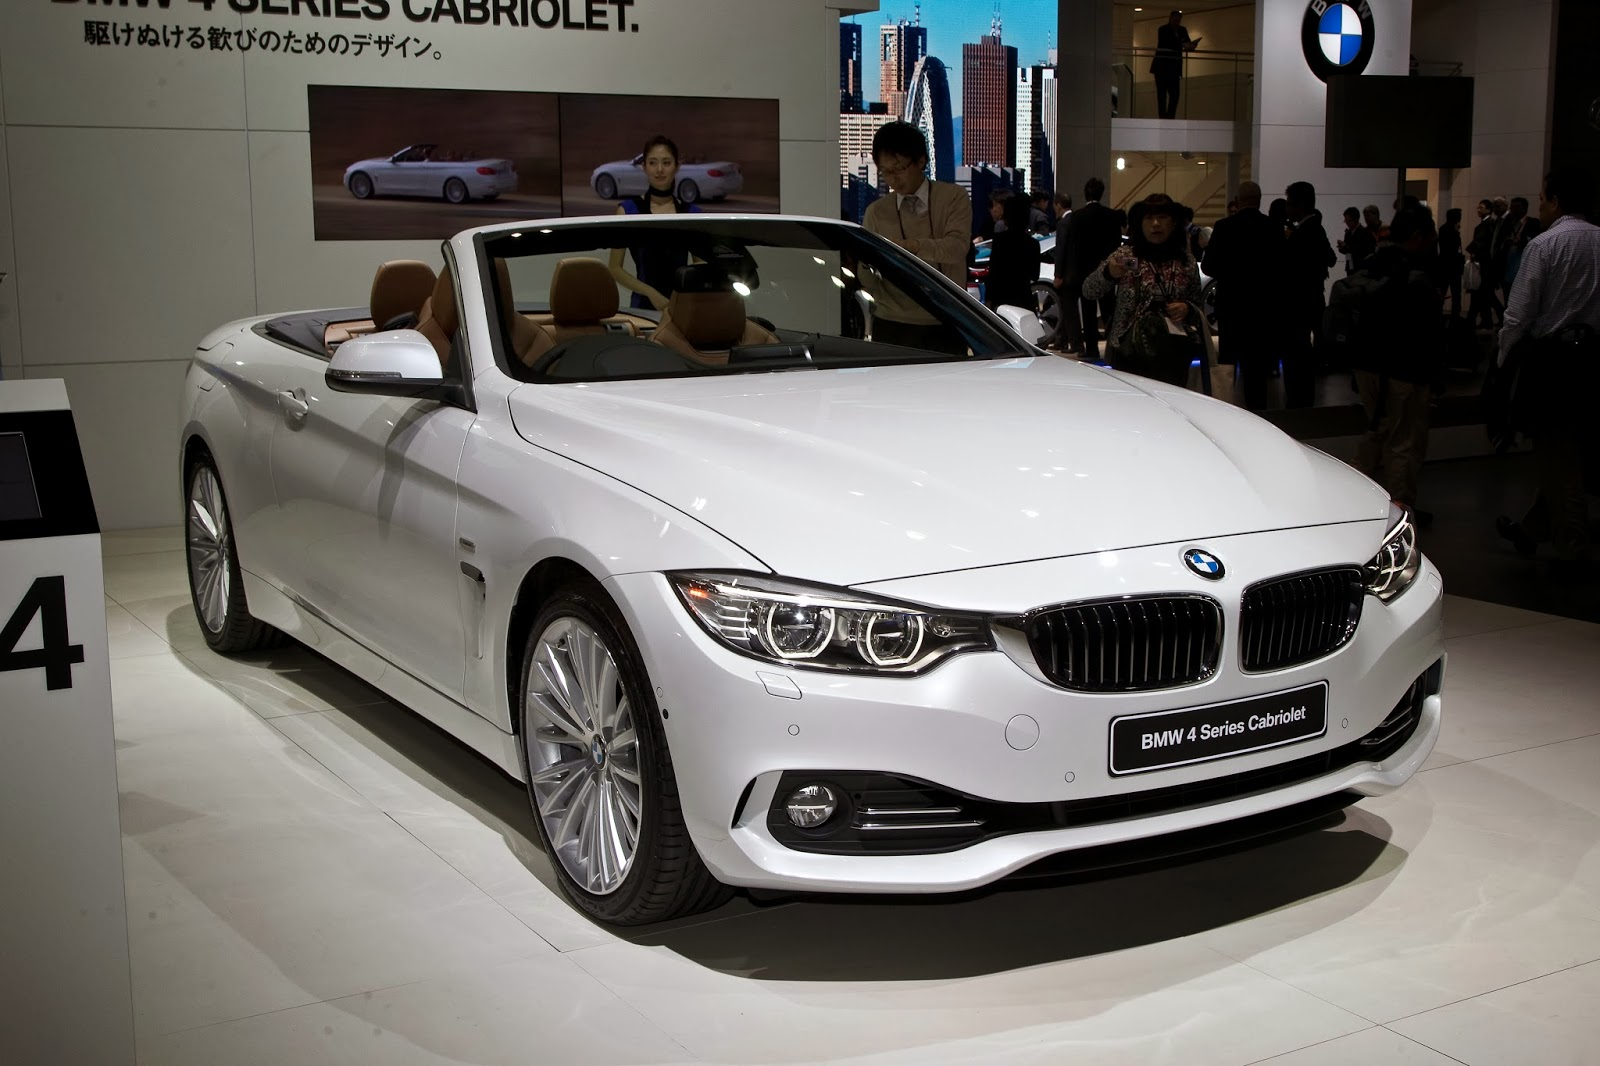 german cars blog bmw 4 series cabriolet. Black Bedroom Furniture Sets. Home Design Ideas